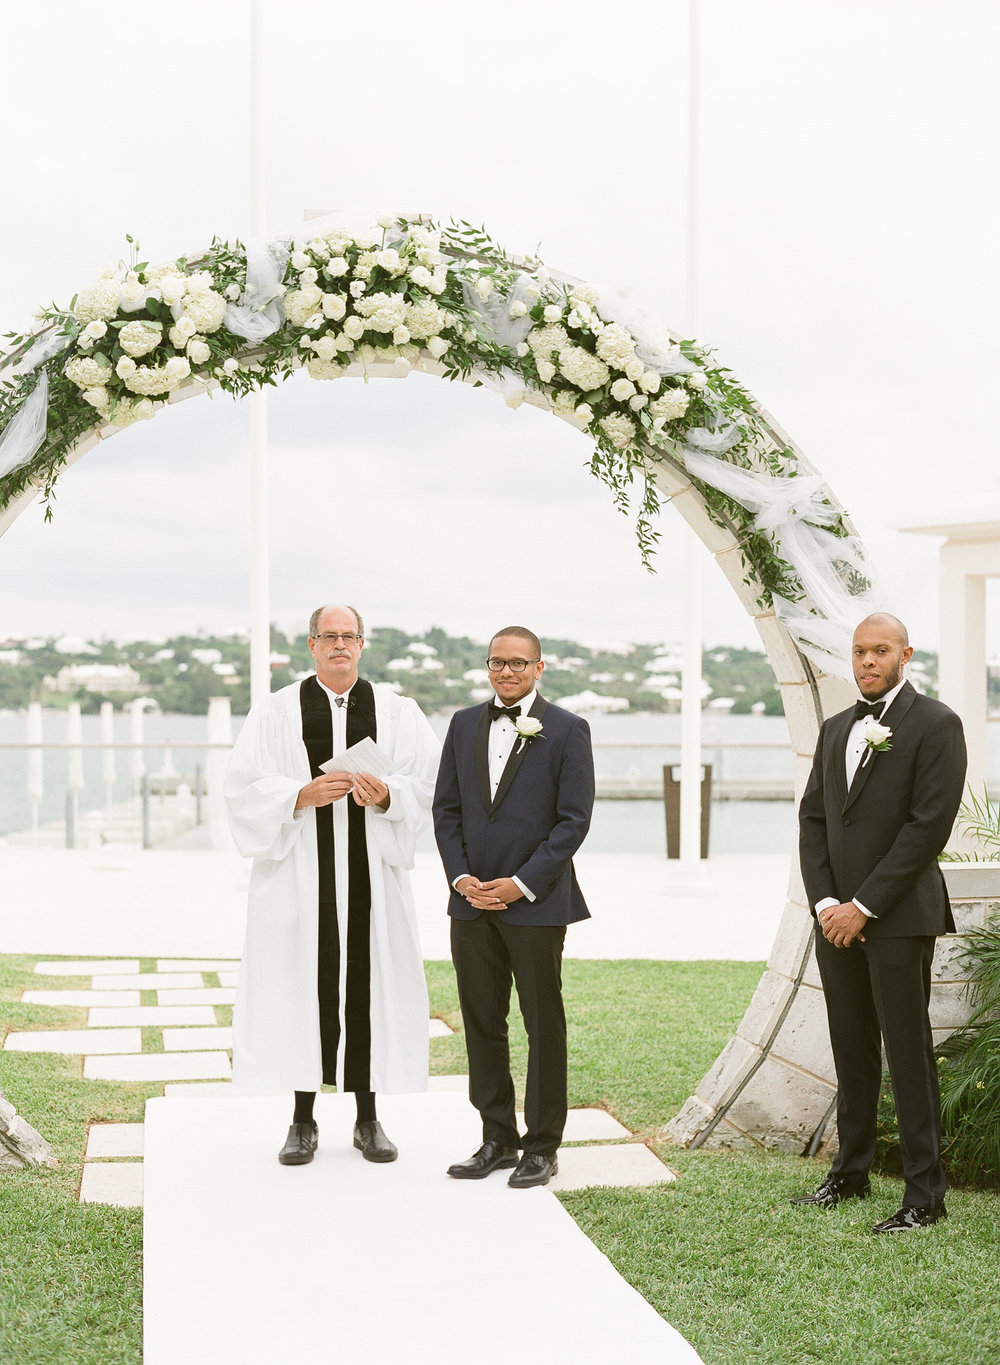 Bonphotage Destination Fine Art Wedding Photography - Hamilton Princess Bermuda